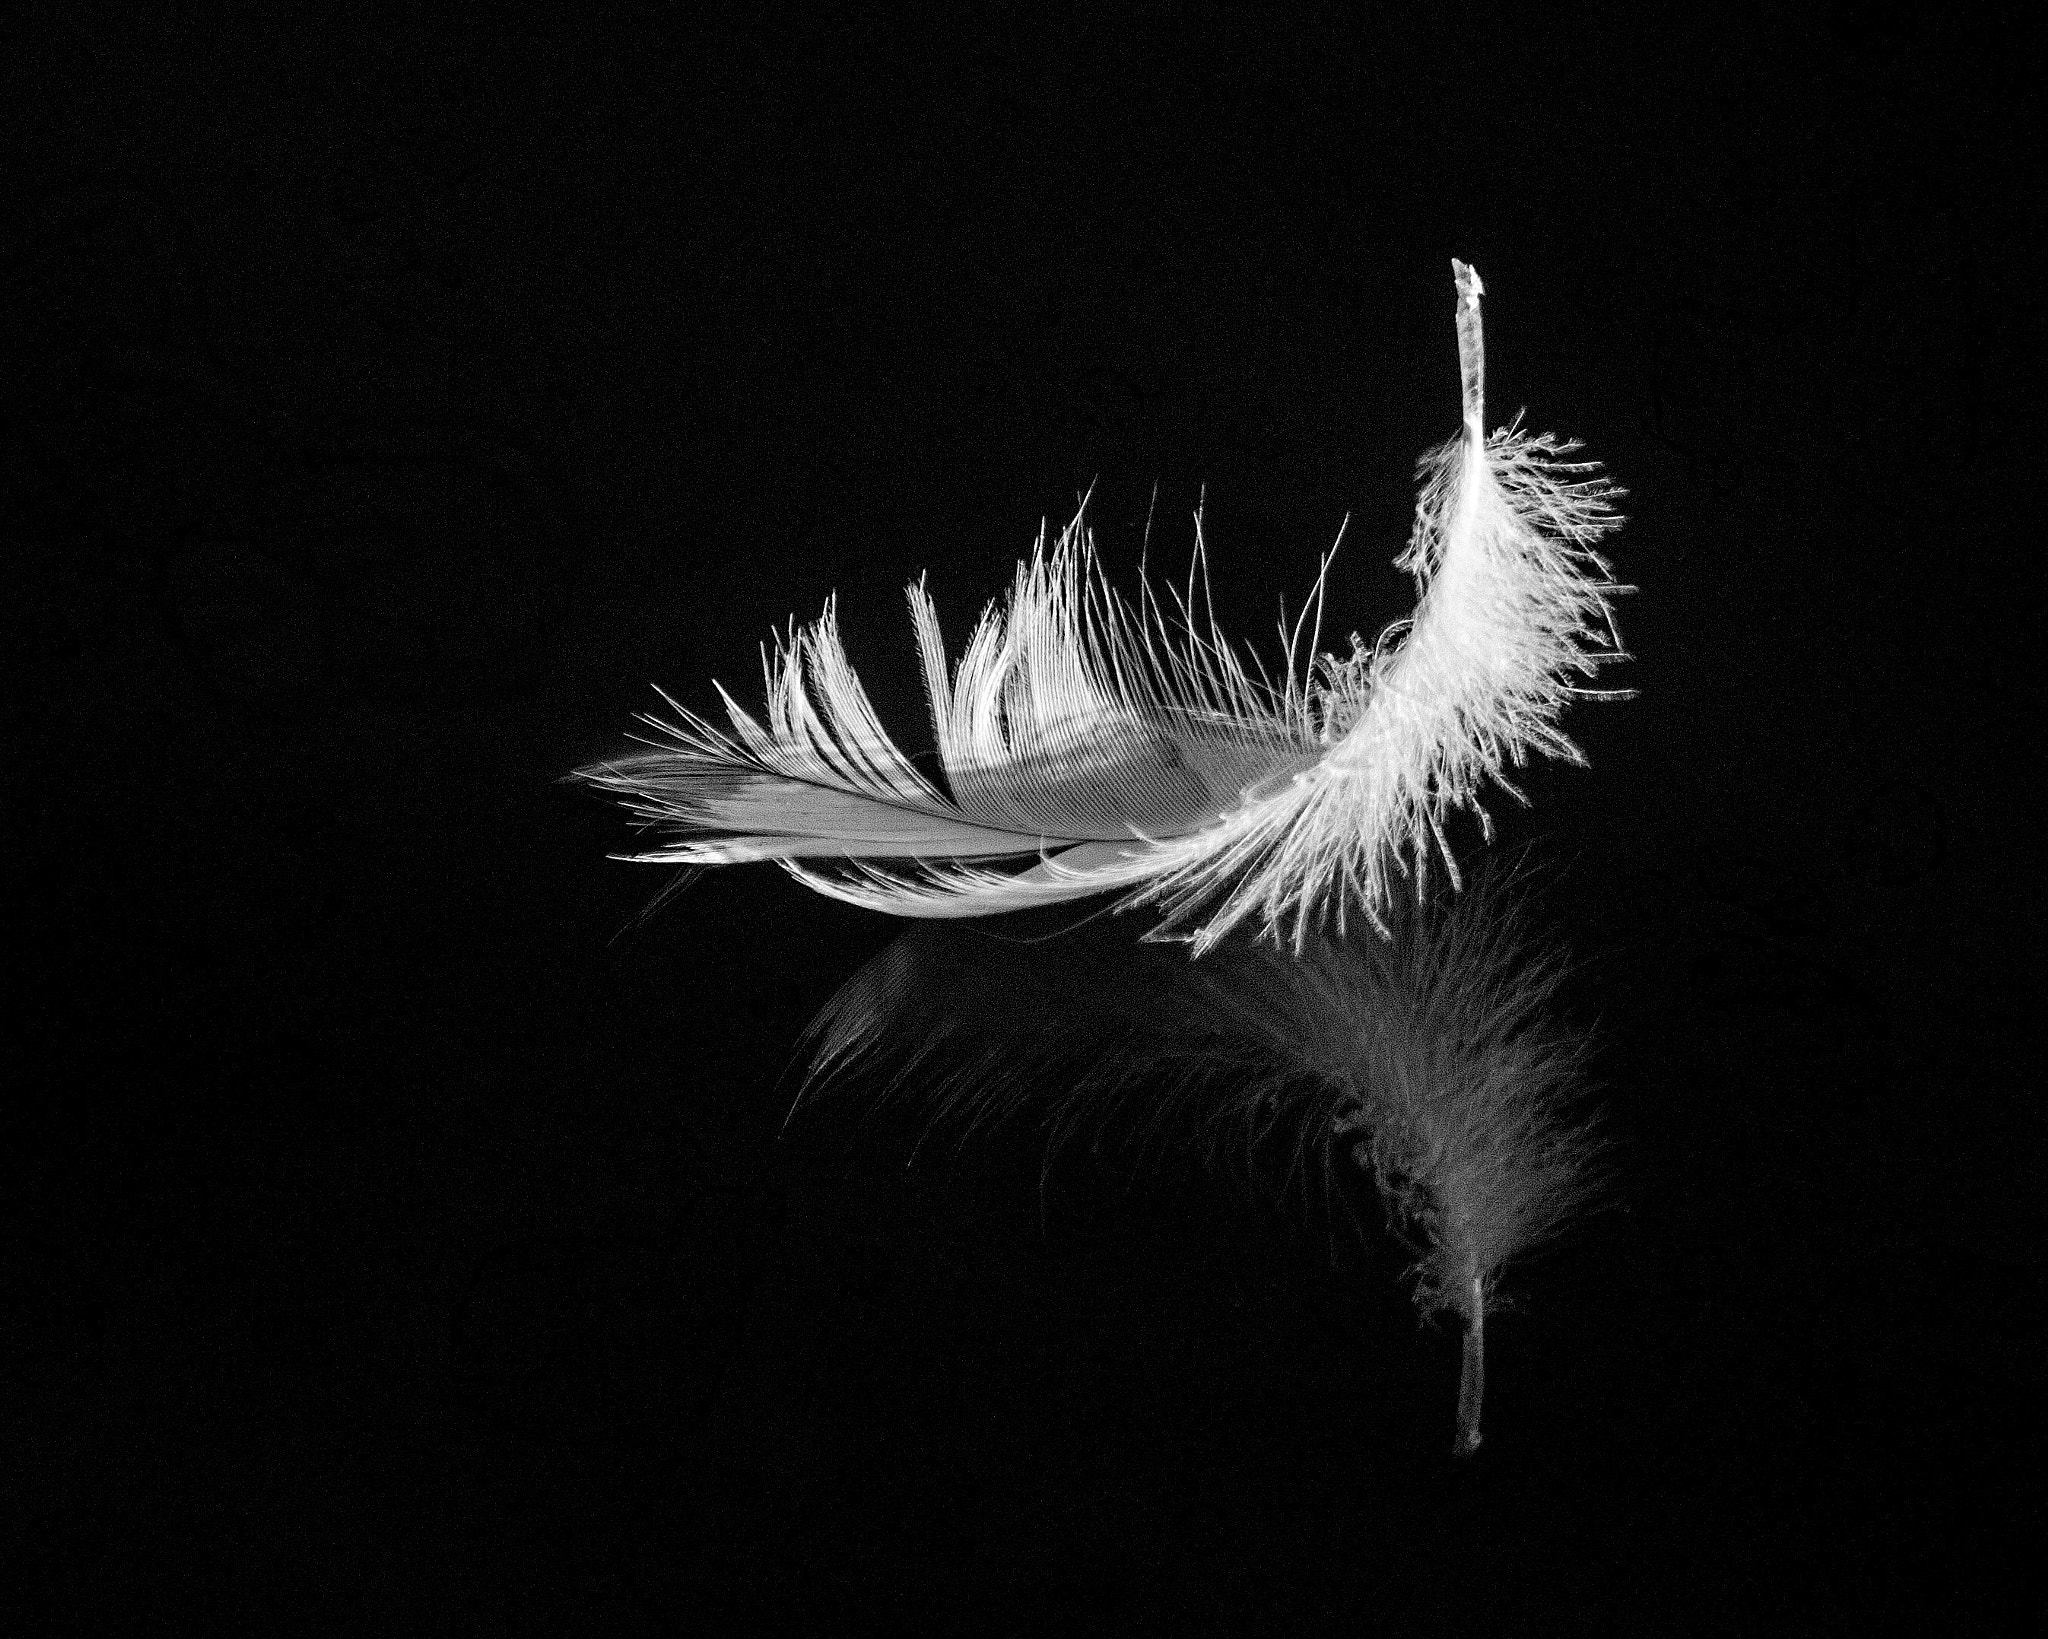 Photograph Feather by Balázs Nagy on 500px